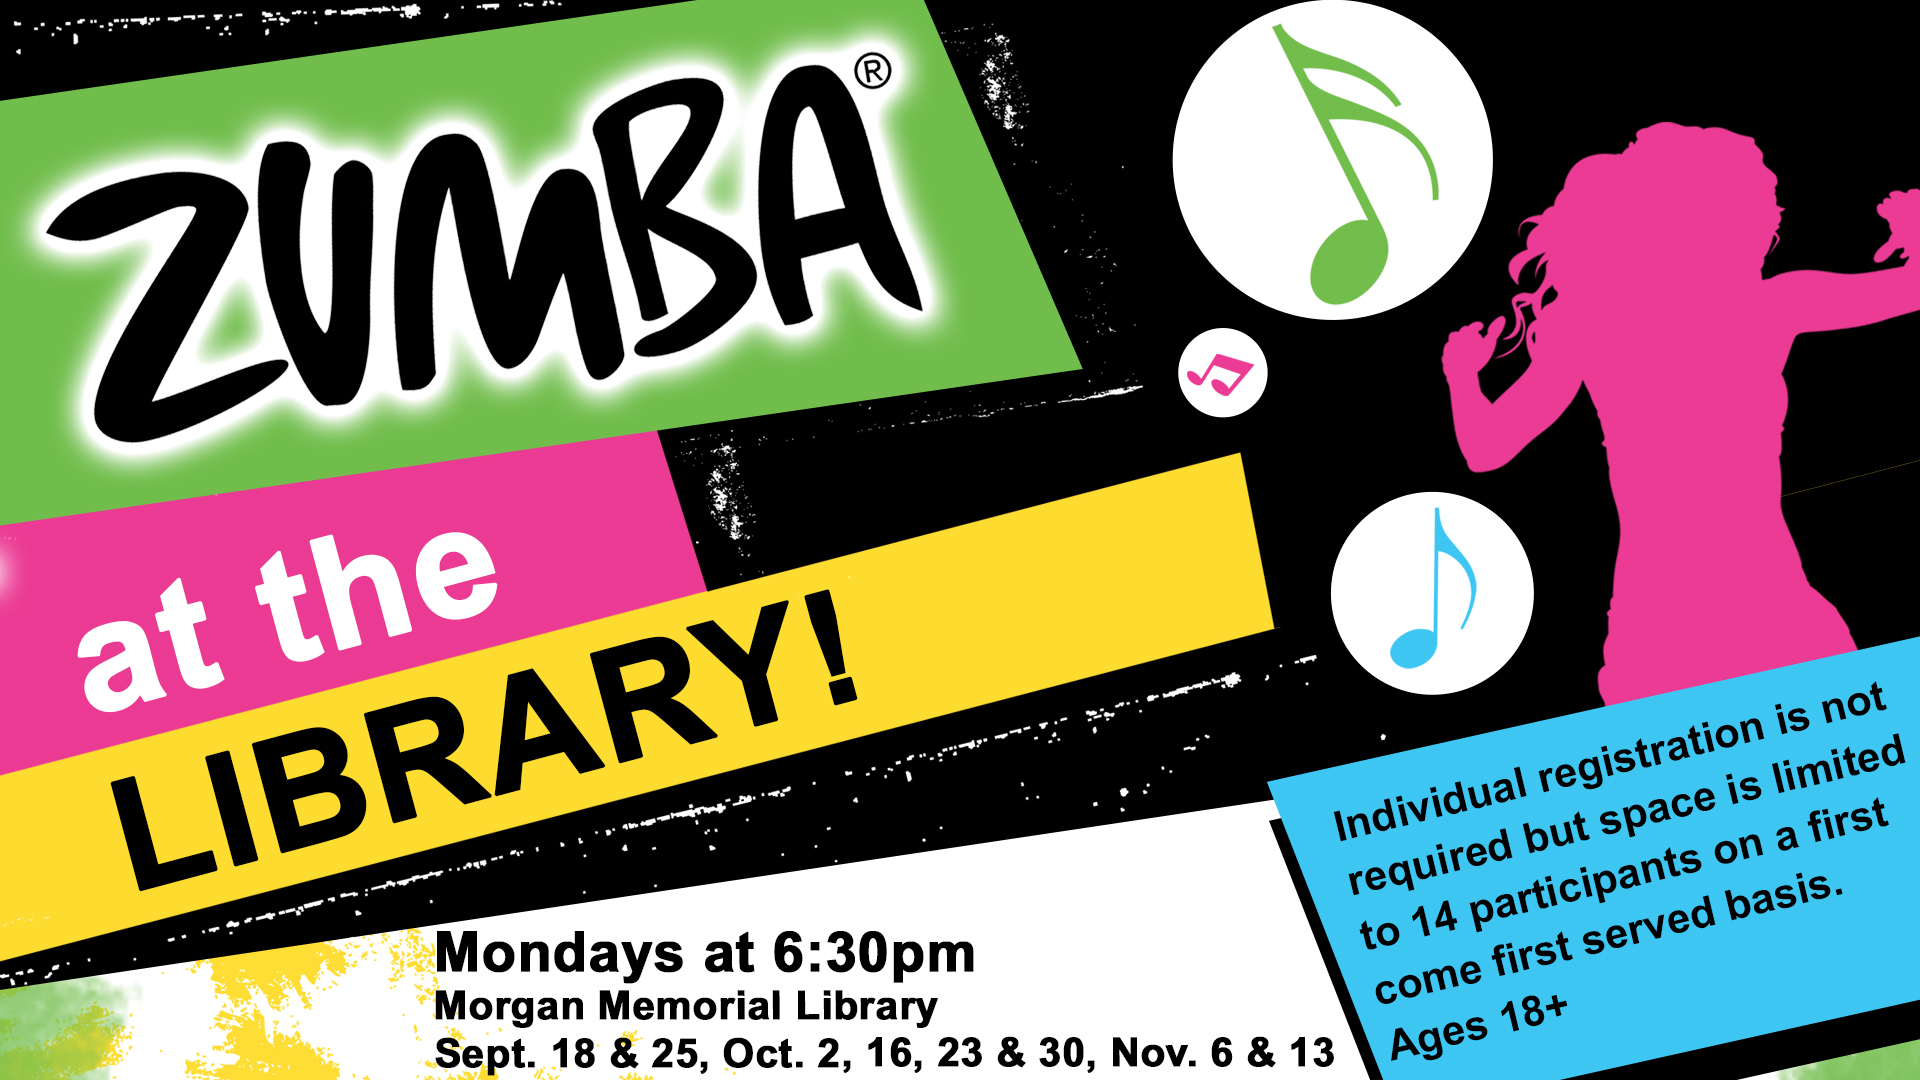 Zumba at the Library